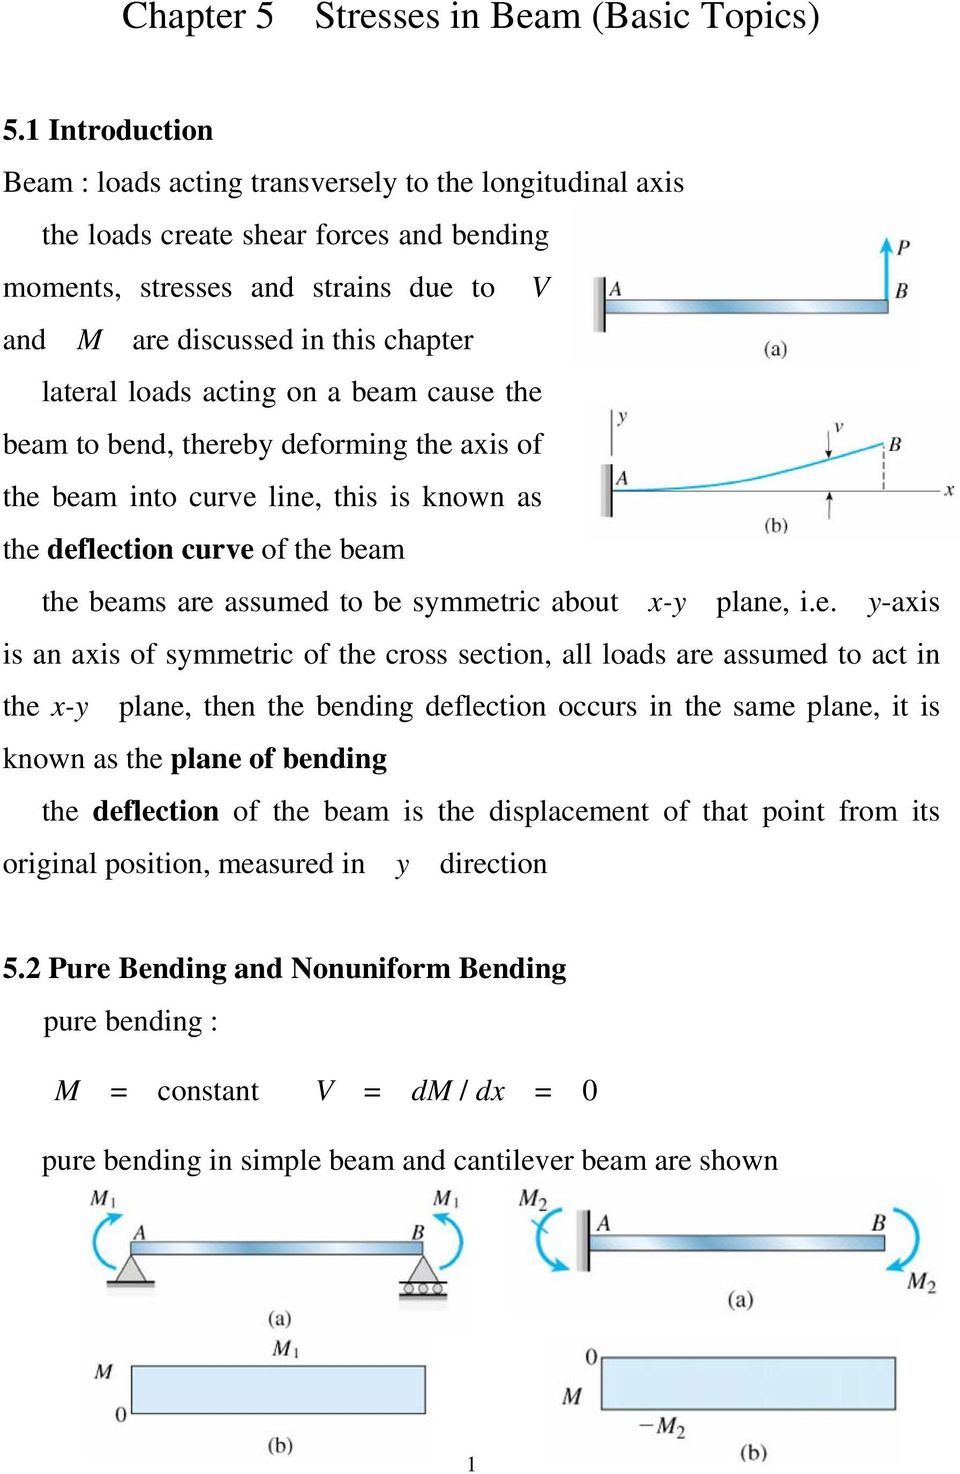 loads acting on a beam cause the beam to bend, thereby deforming the axis of the beam into curve line, this is known as the deflection curve of the beam the beams are assumed to be symmetric about